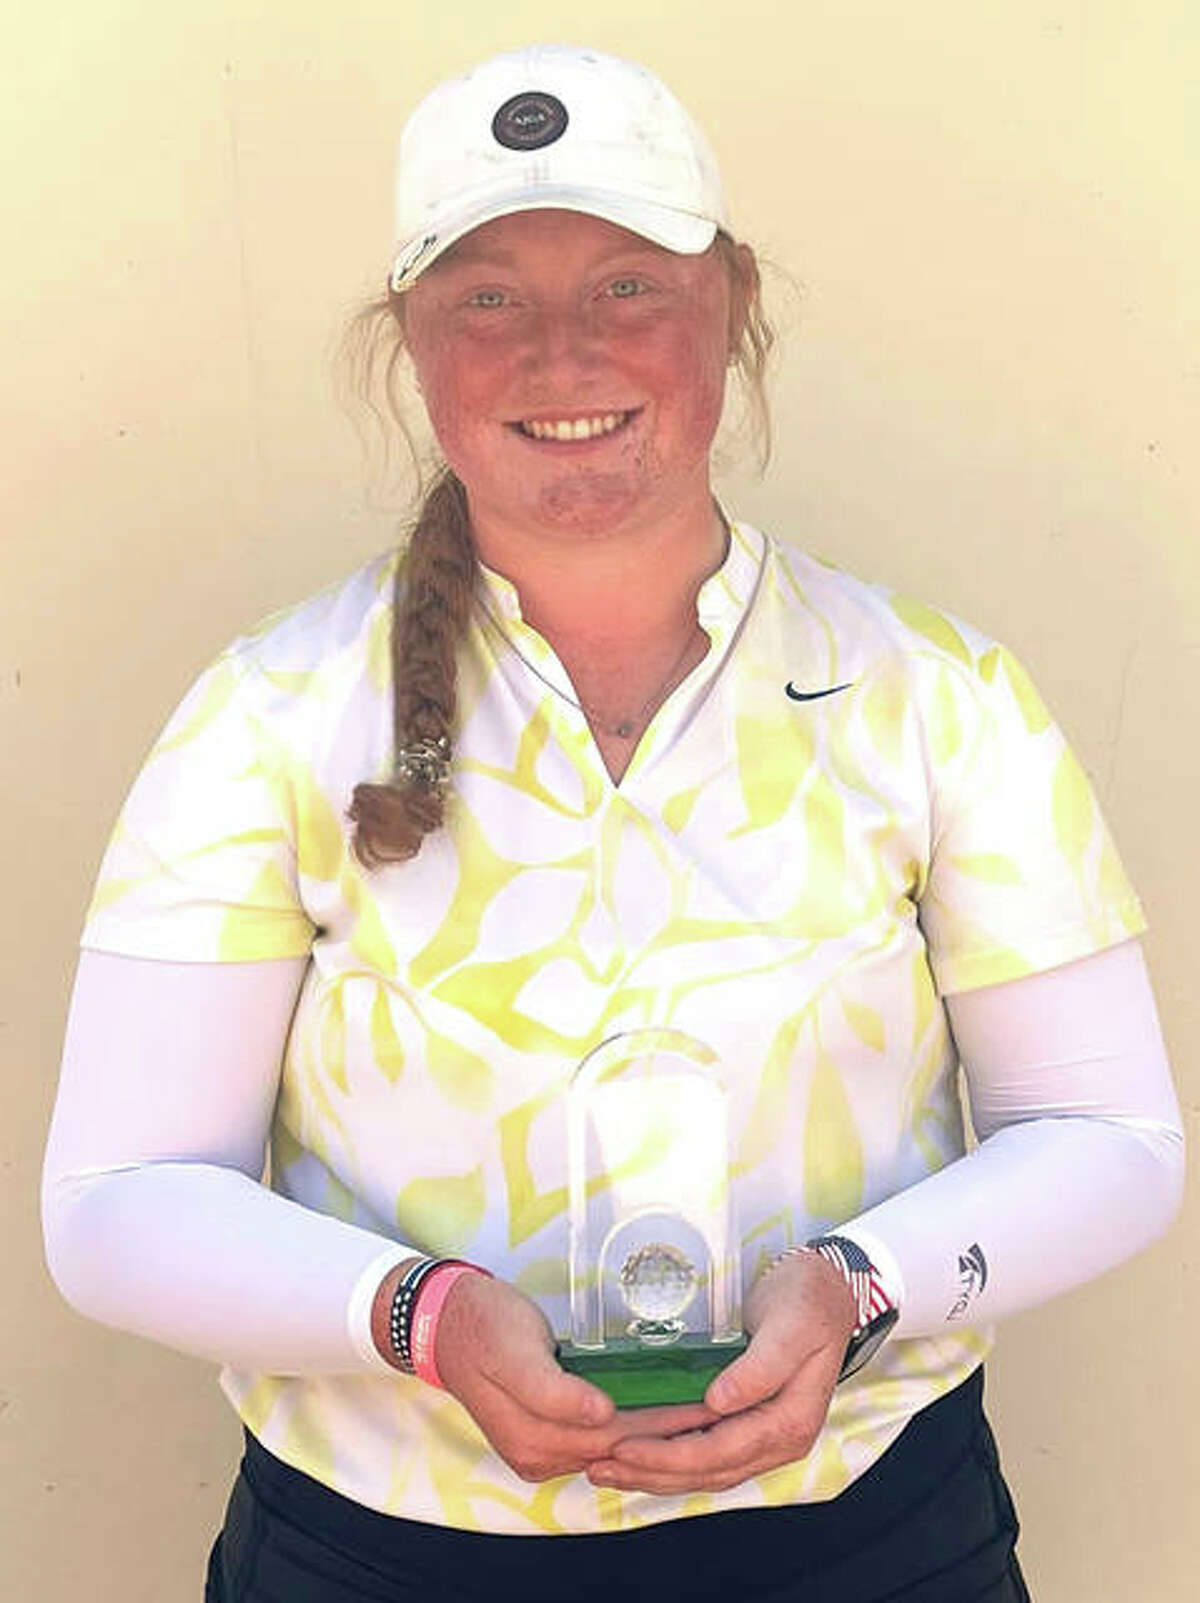 East Alton's Gracie Piar with her semifinalist trophy Thursday at the Illinois Women's Amateur Golf Championship in Mundelein.